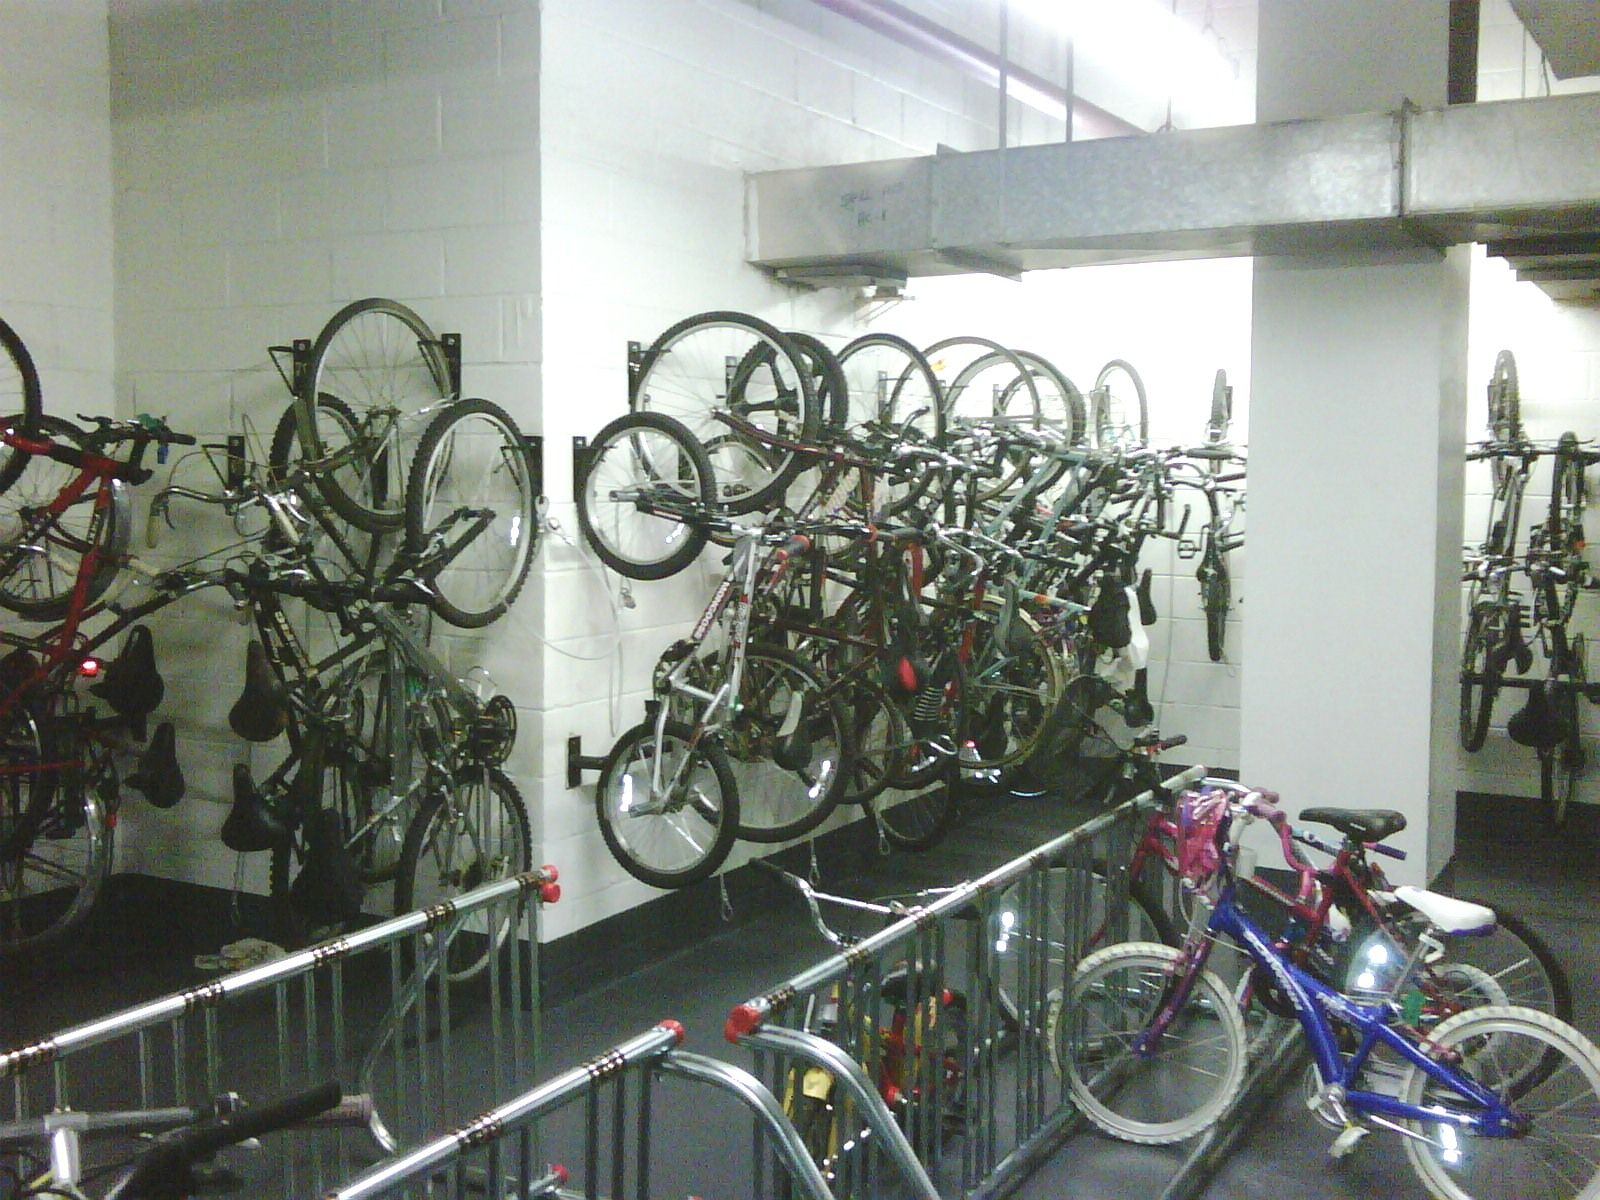 Wall Mount Bike Racks Wall Mount Bike Racks Are The Most Space